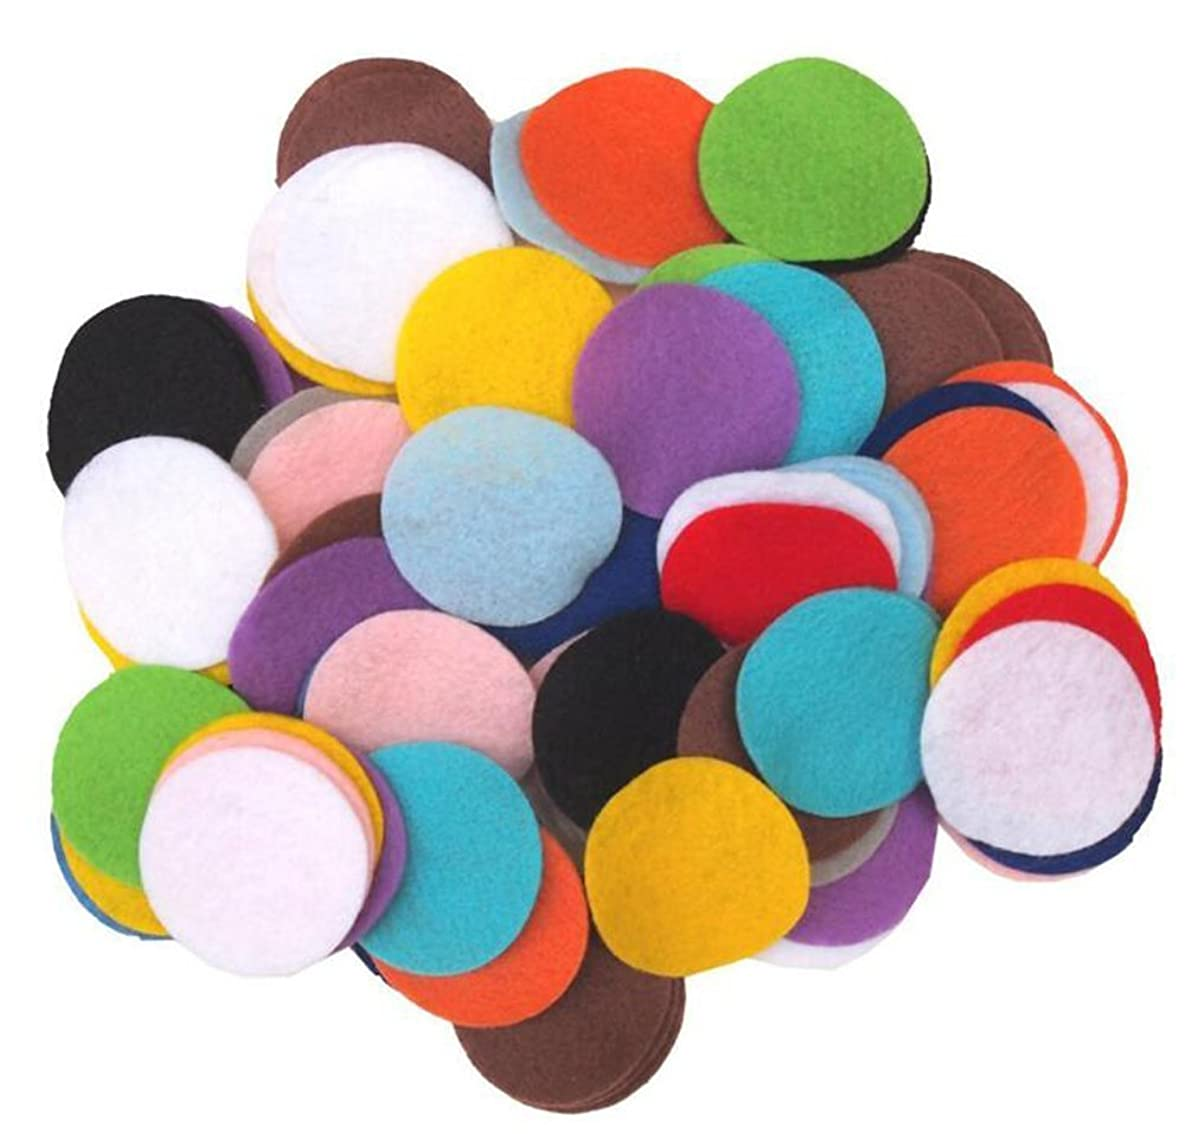 Mixed Colors 500 Pieces Non-Woven Round Shapes DIY Craft Sewing Felt Pads Circles Headdress Flowers Decoration Circles (1.5cm)